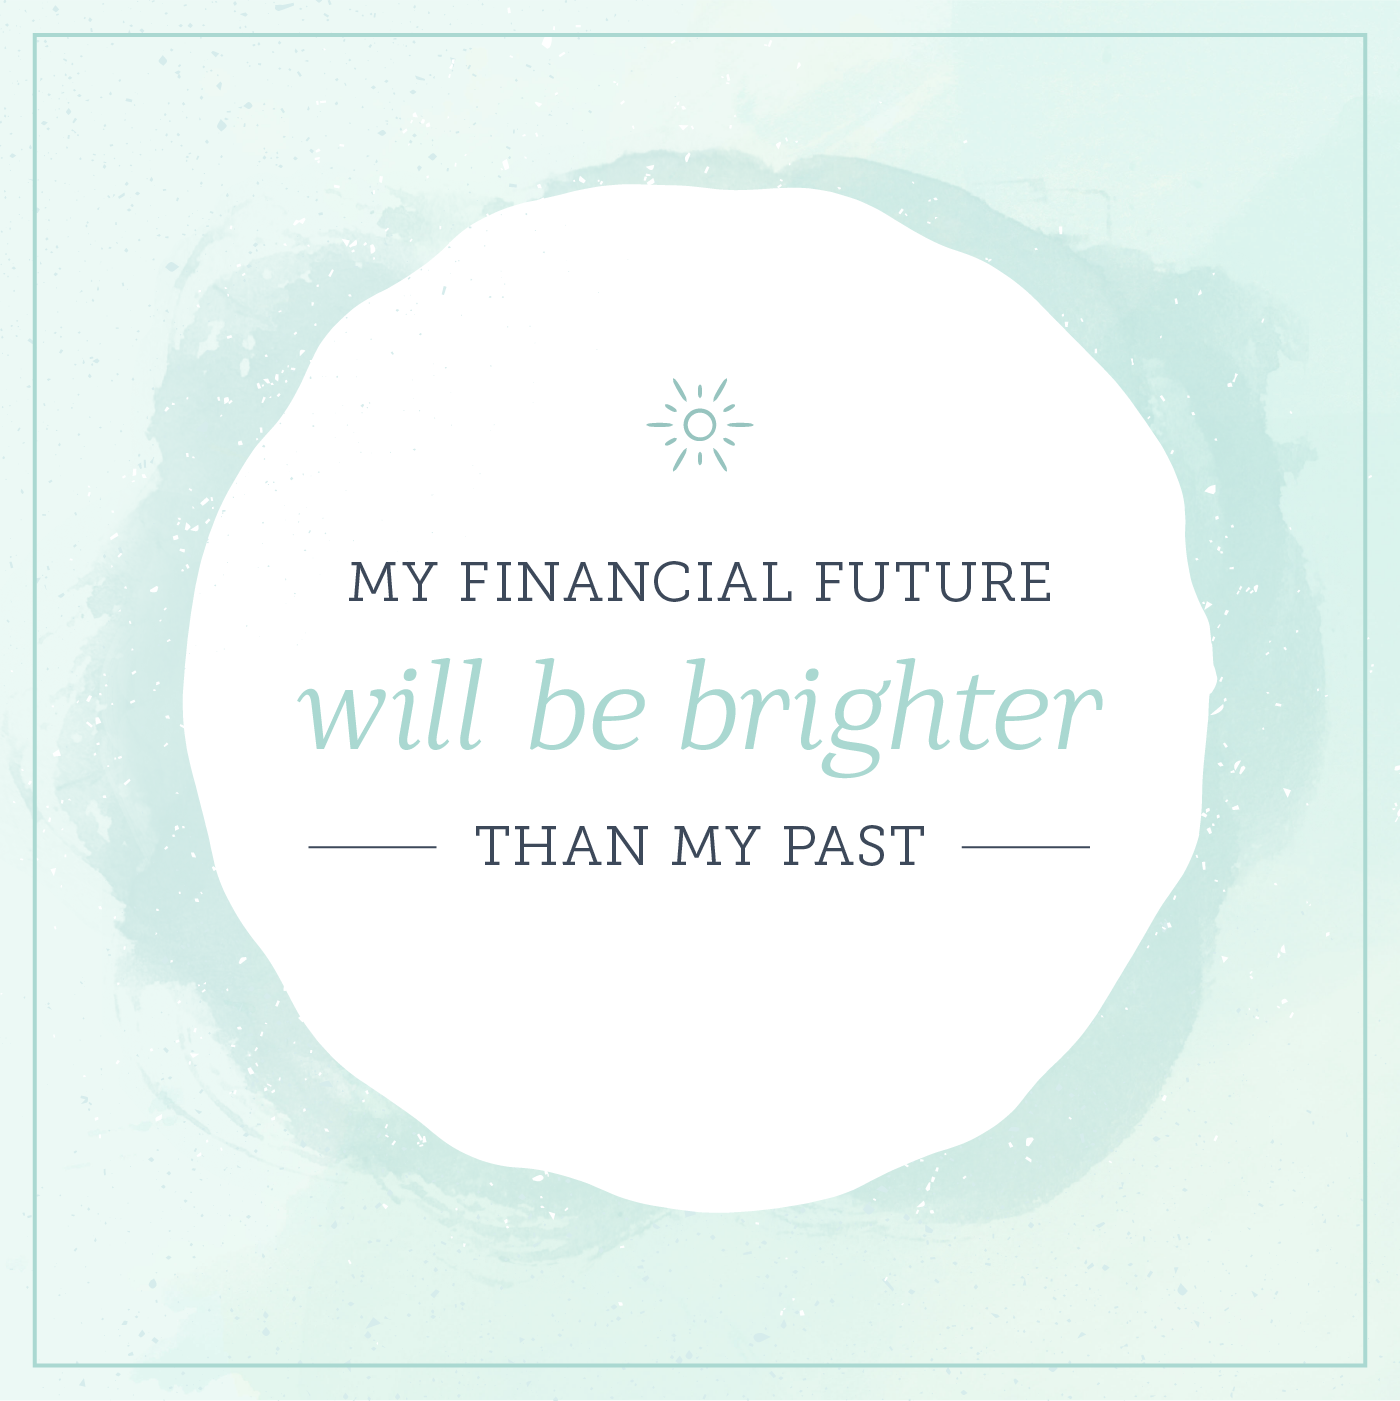 my financial future will be brighter than my past